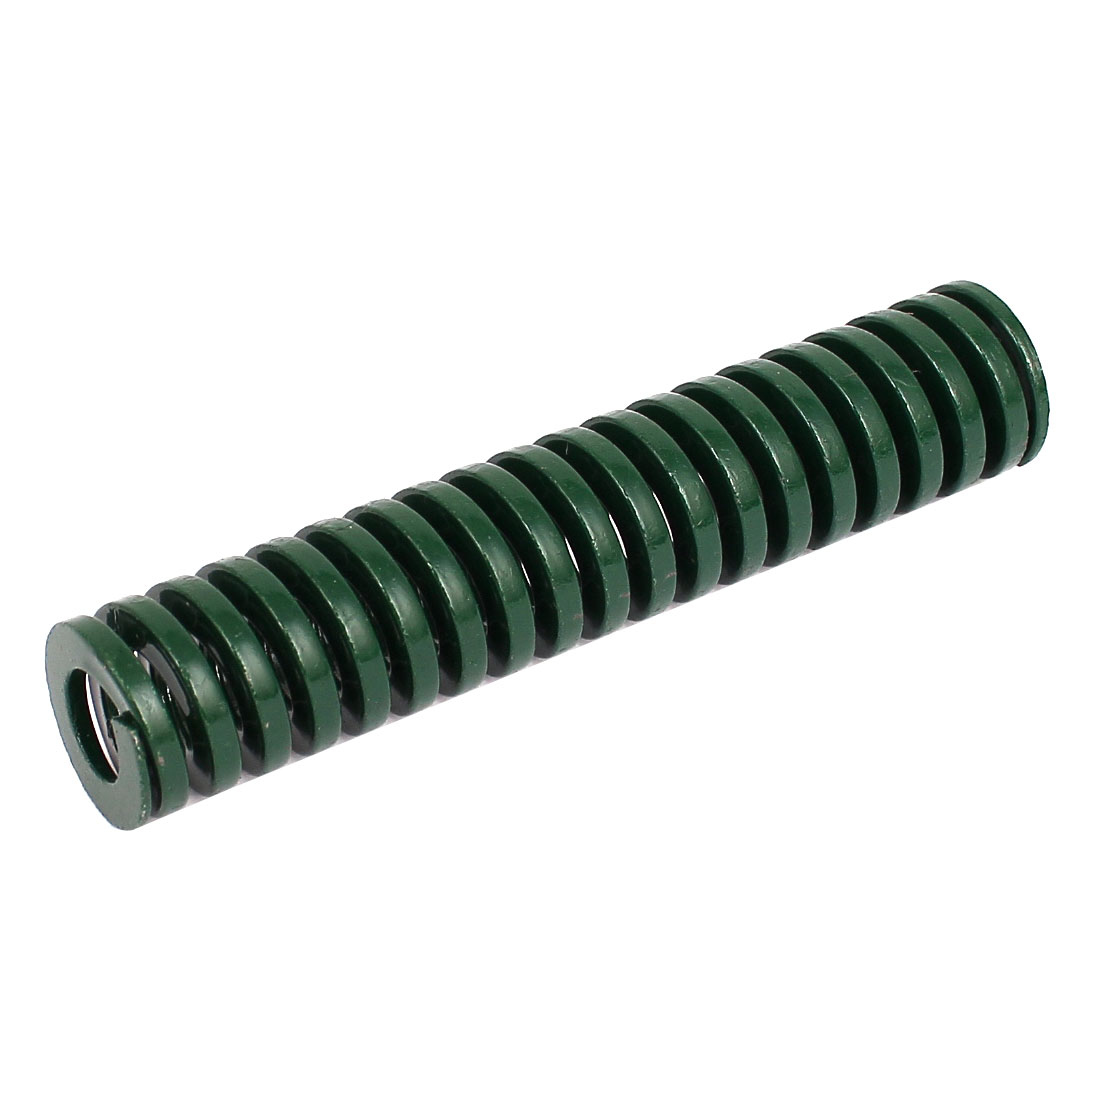 16mm OD 80mm Long Heavy Load Coil Stamping Compression Mold Die Spring Green